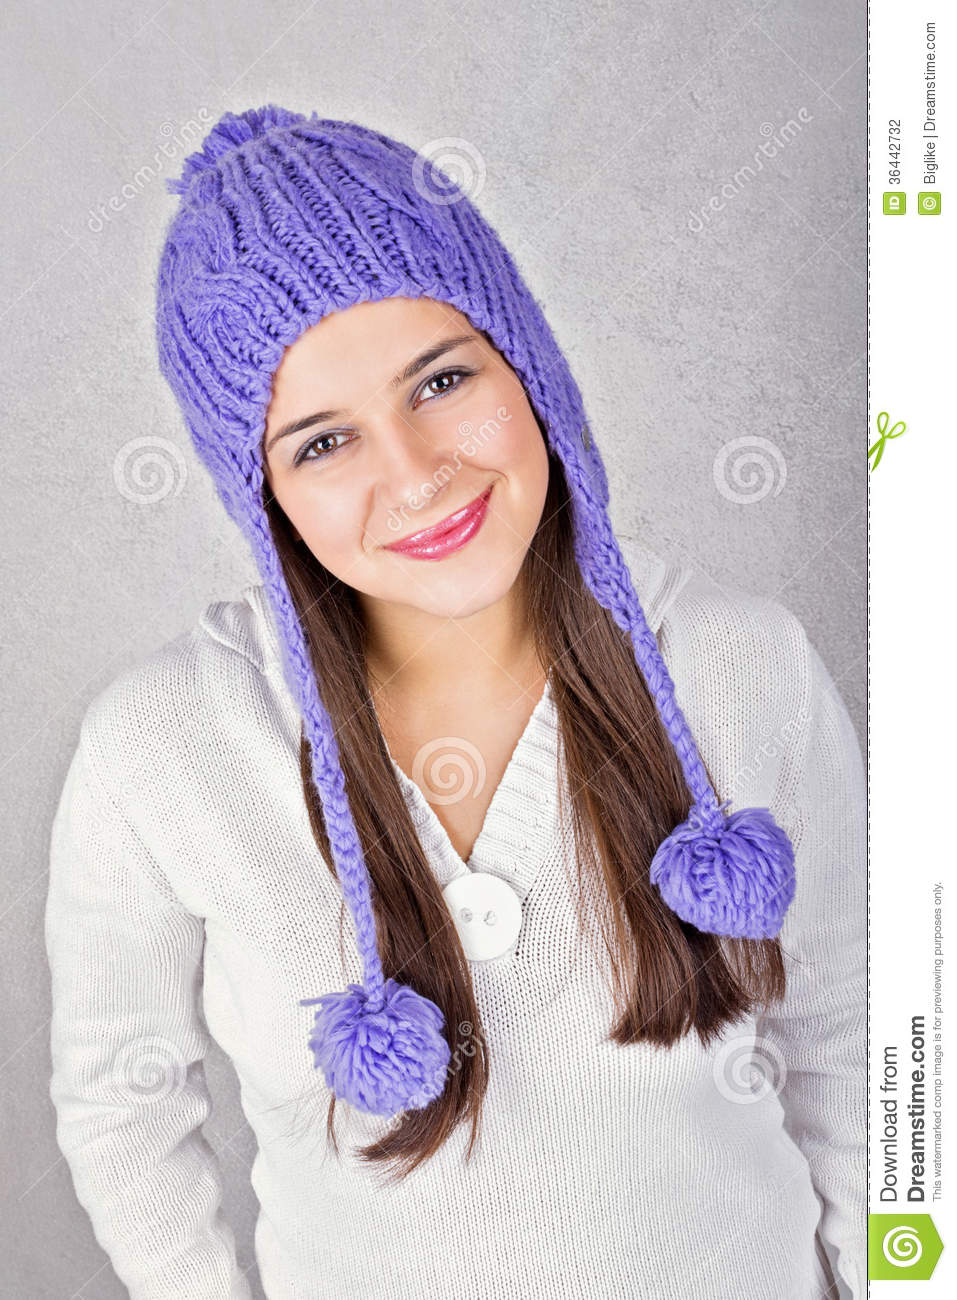 Happy cute Caucasian brunette young teenage girl wearing purple beanie hat  and white sweater smiling looking at camera against gray texture background. 84edd4e3f53